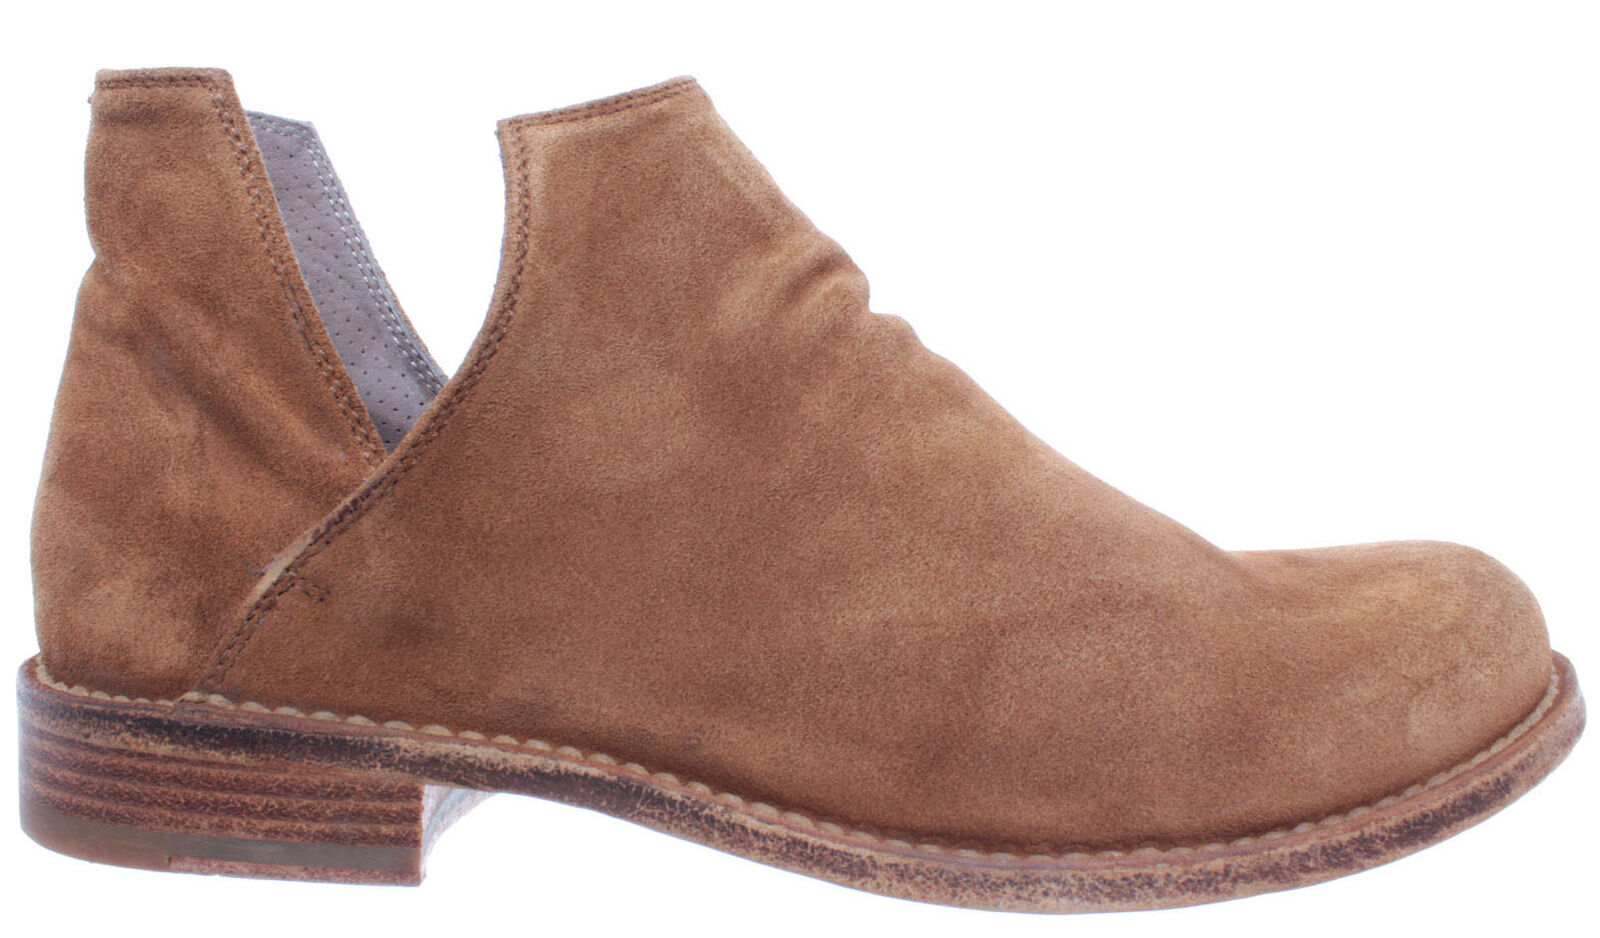 OFFICINE CREATIVE shoes women Bottes Legrand  135 Softy Cognac Chamois